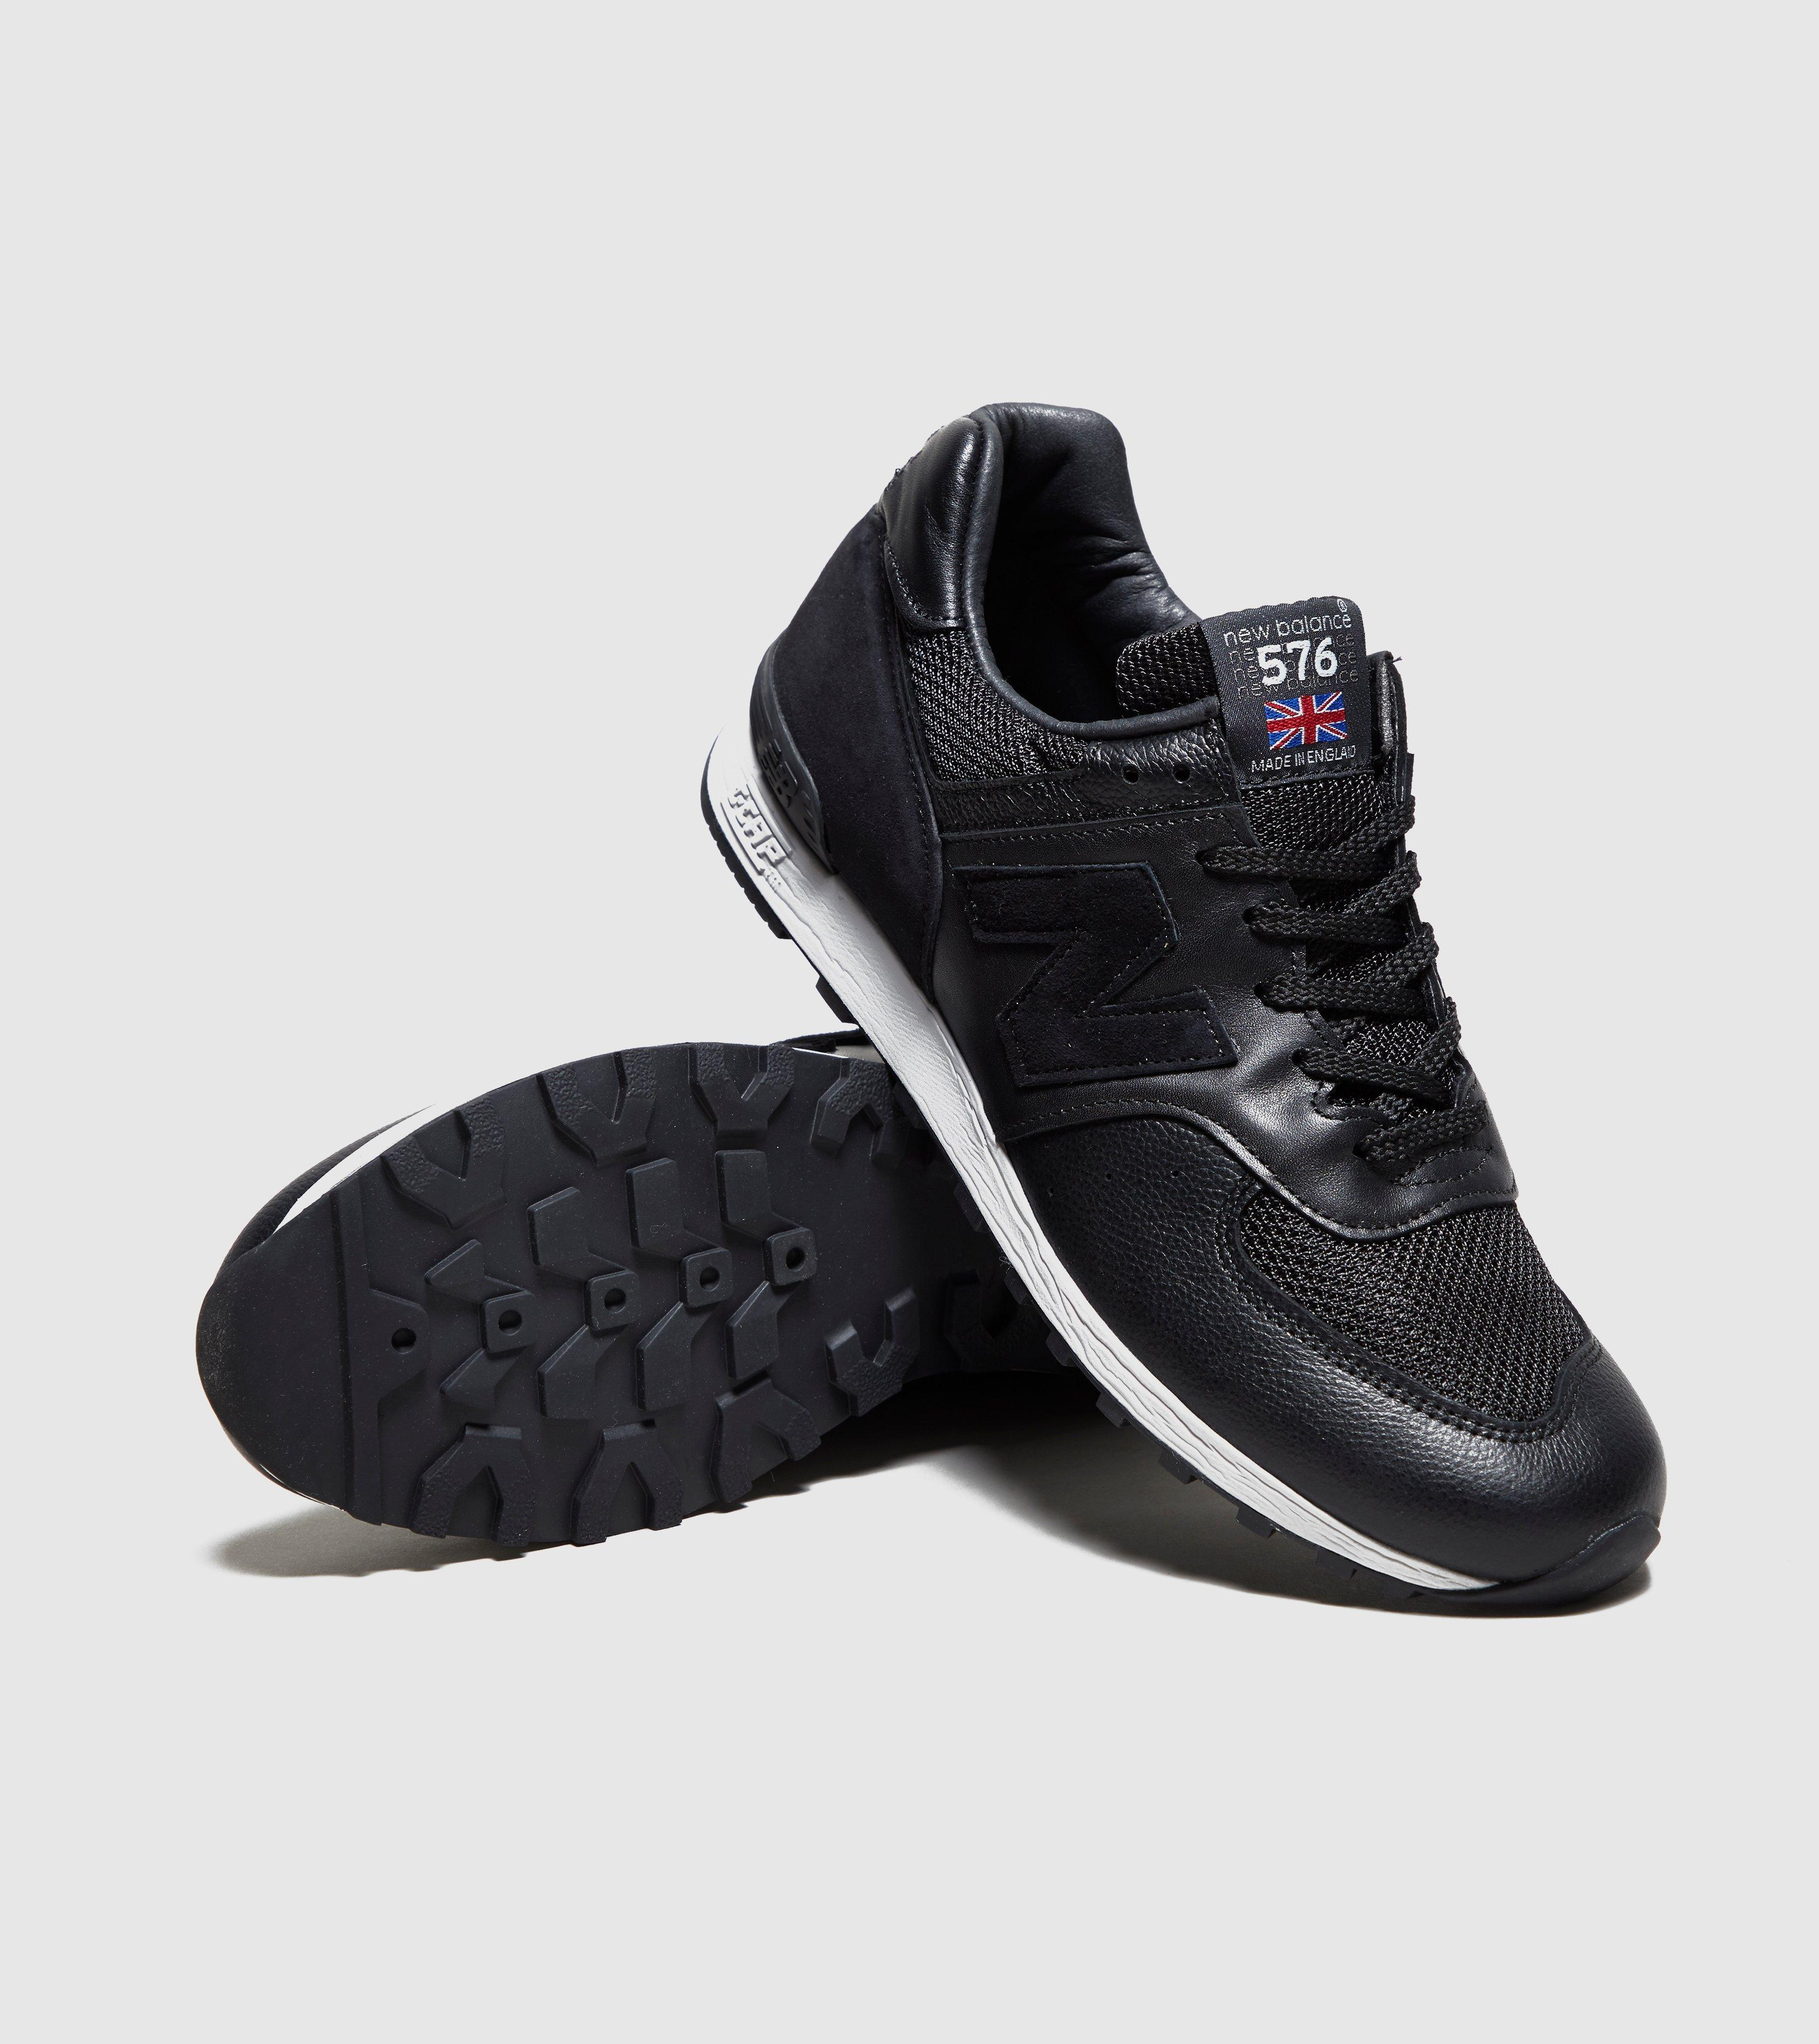 reputable site b0b0b 4a506 ... spain lyst new balance 576 premium leather in black for men 9067e 081d4